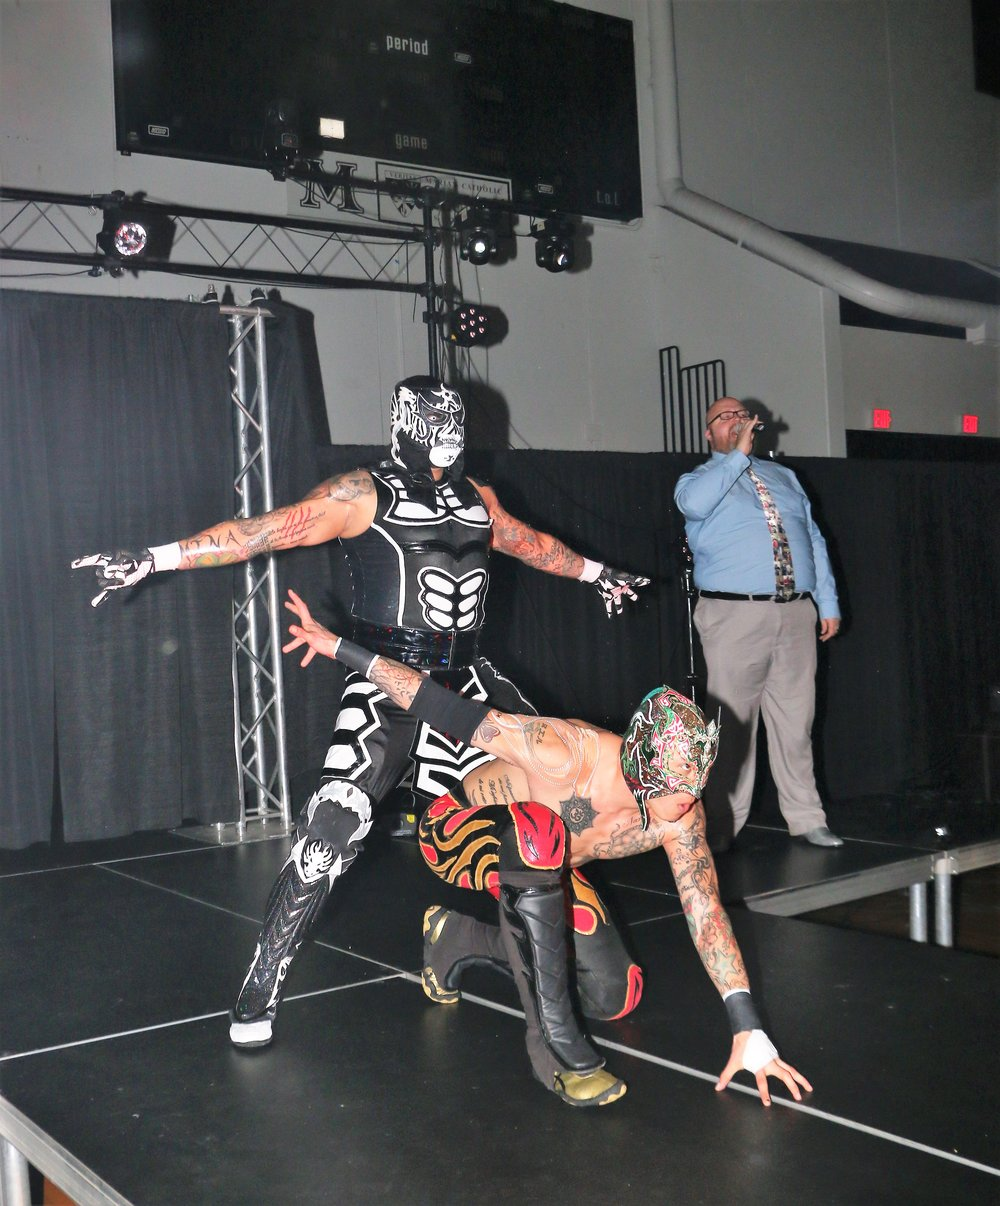 Penta El 0M, left, and Fenix, make their entrance before their tag team match against Team White Wolf.